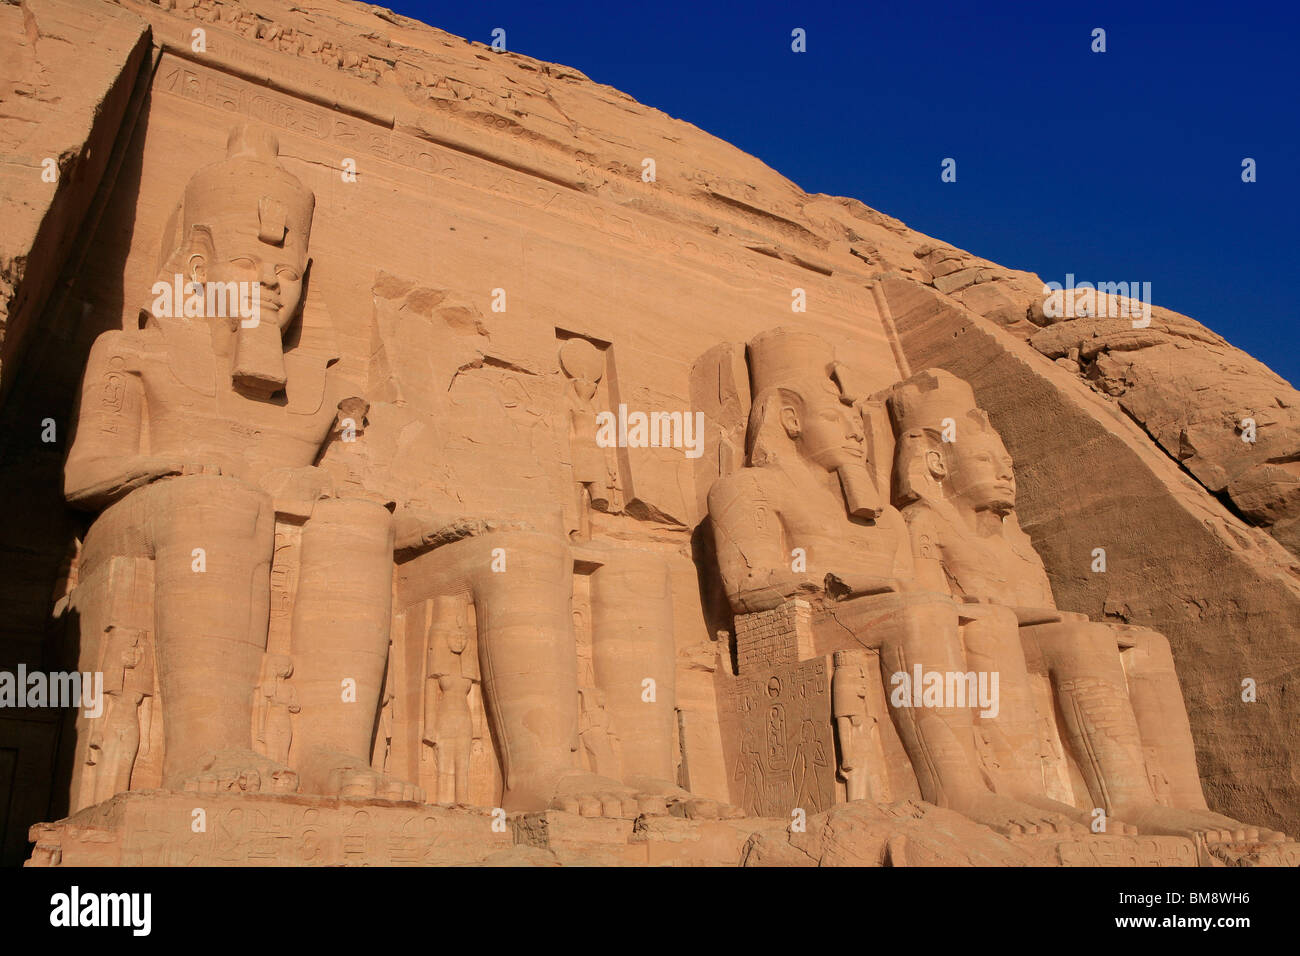 The Temple of 19th dynasty Egyptian Pharaoh Ramesses II at Abu Simbel, Egypt Stock Photo